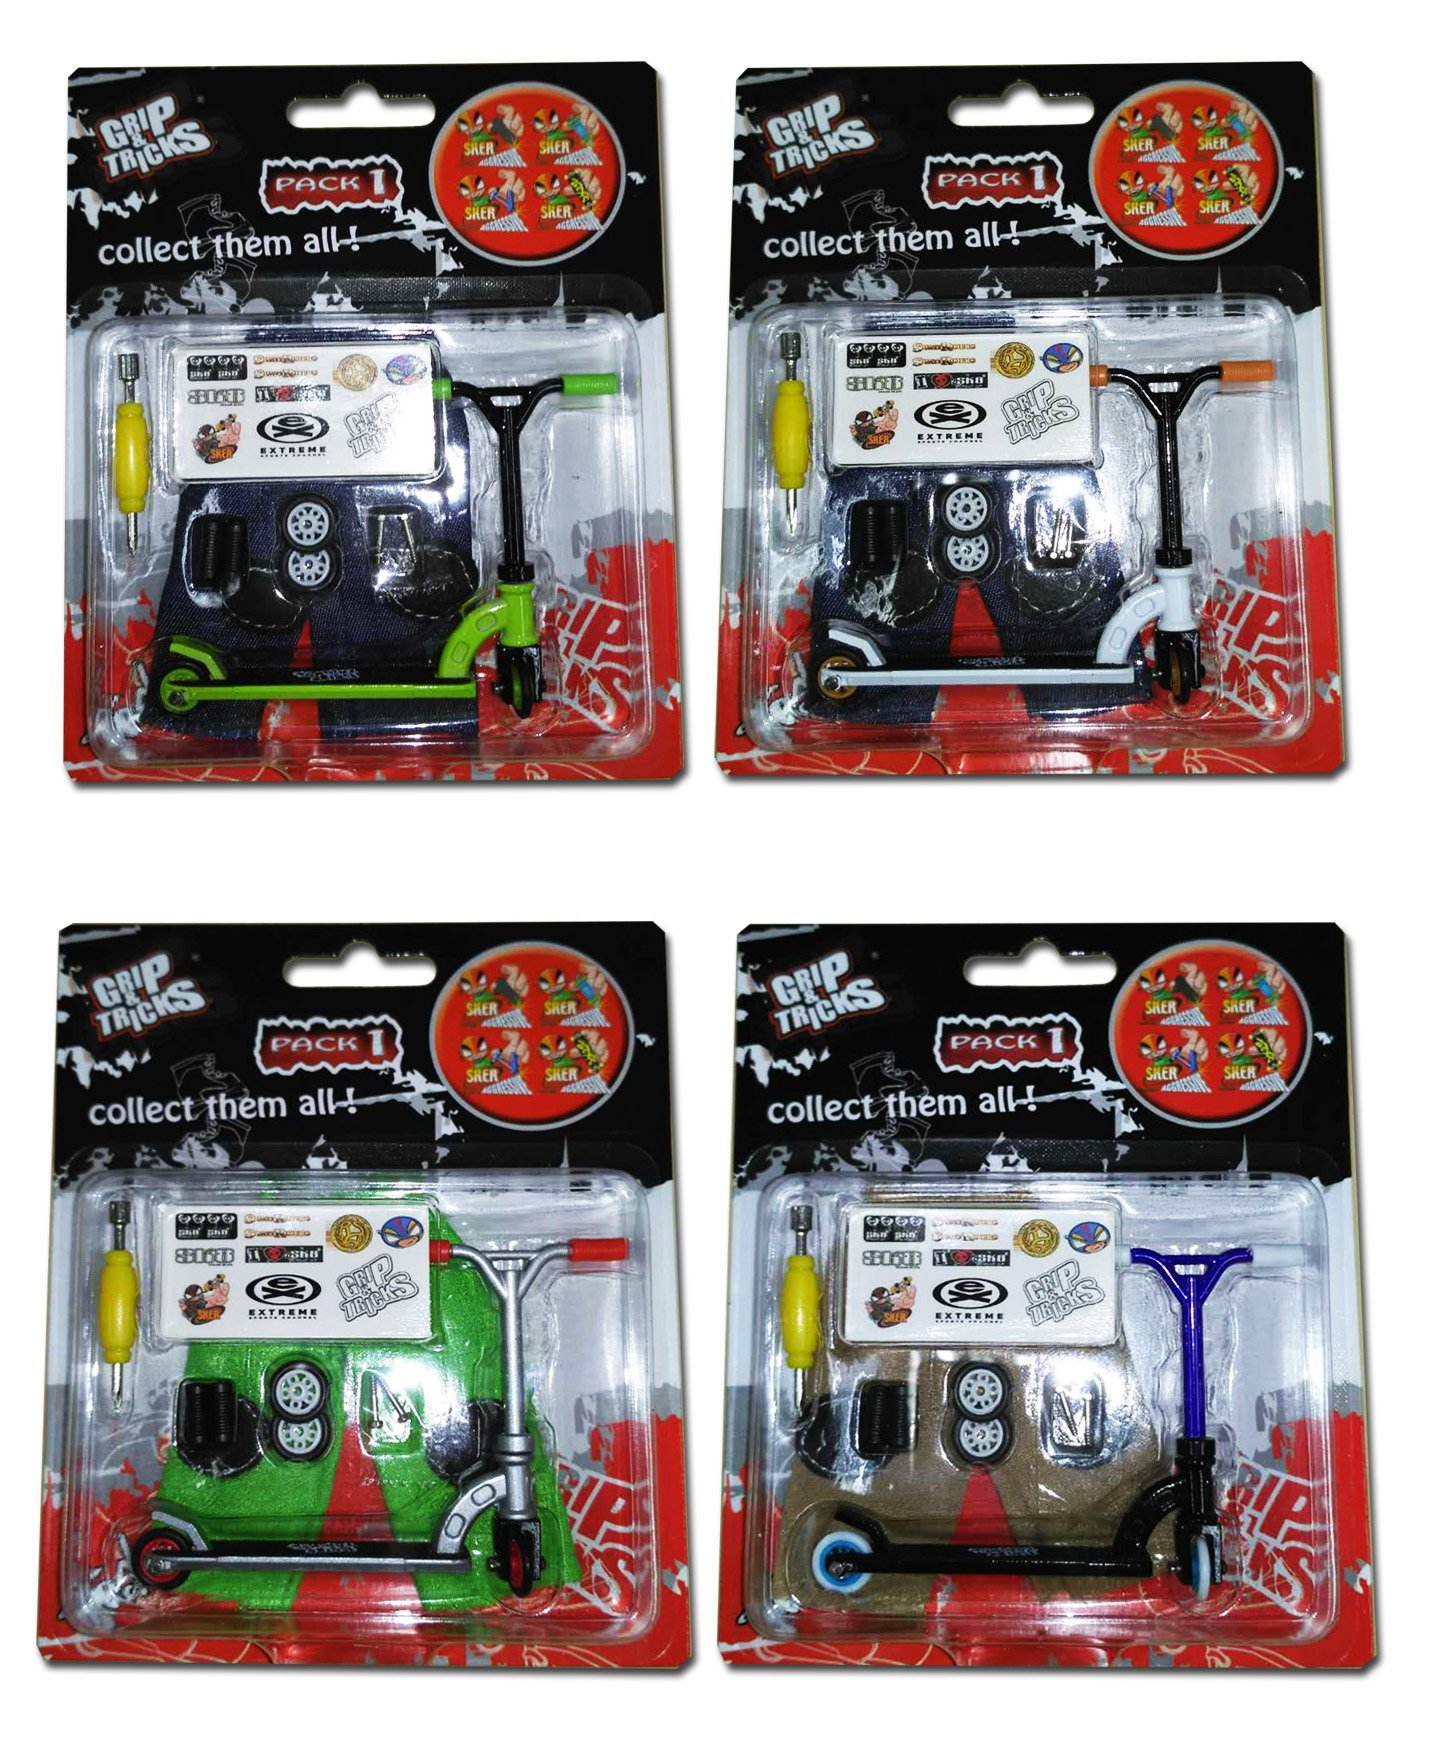 LOT of 4 Scooters - Grip and Tricks - Great Deal 4 Pack of Finger Scooters - Skate - Pack1 by Grip&Tricks